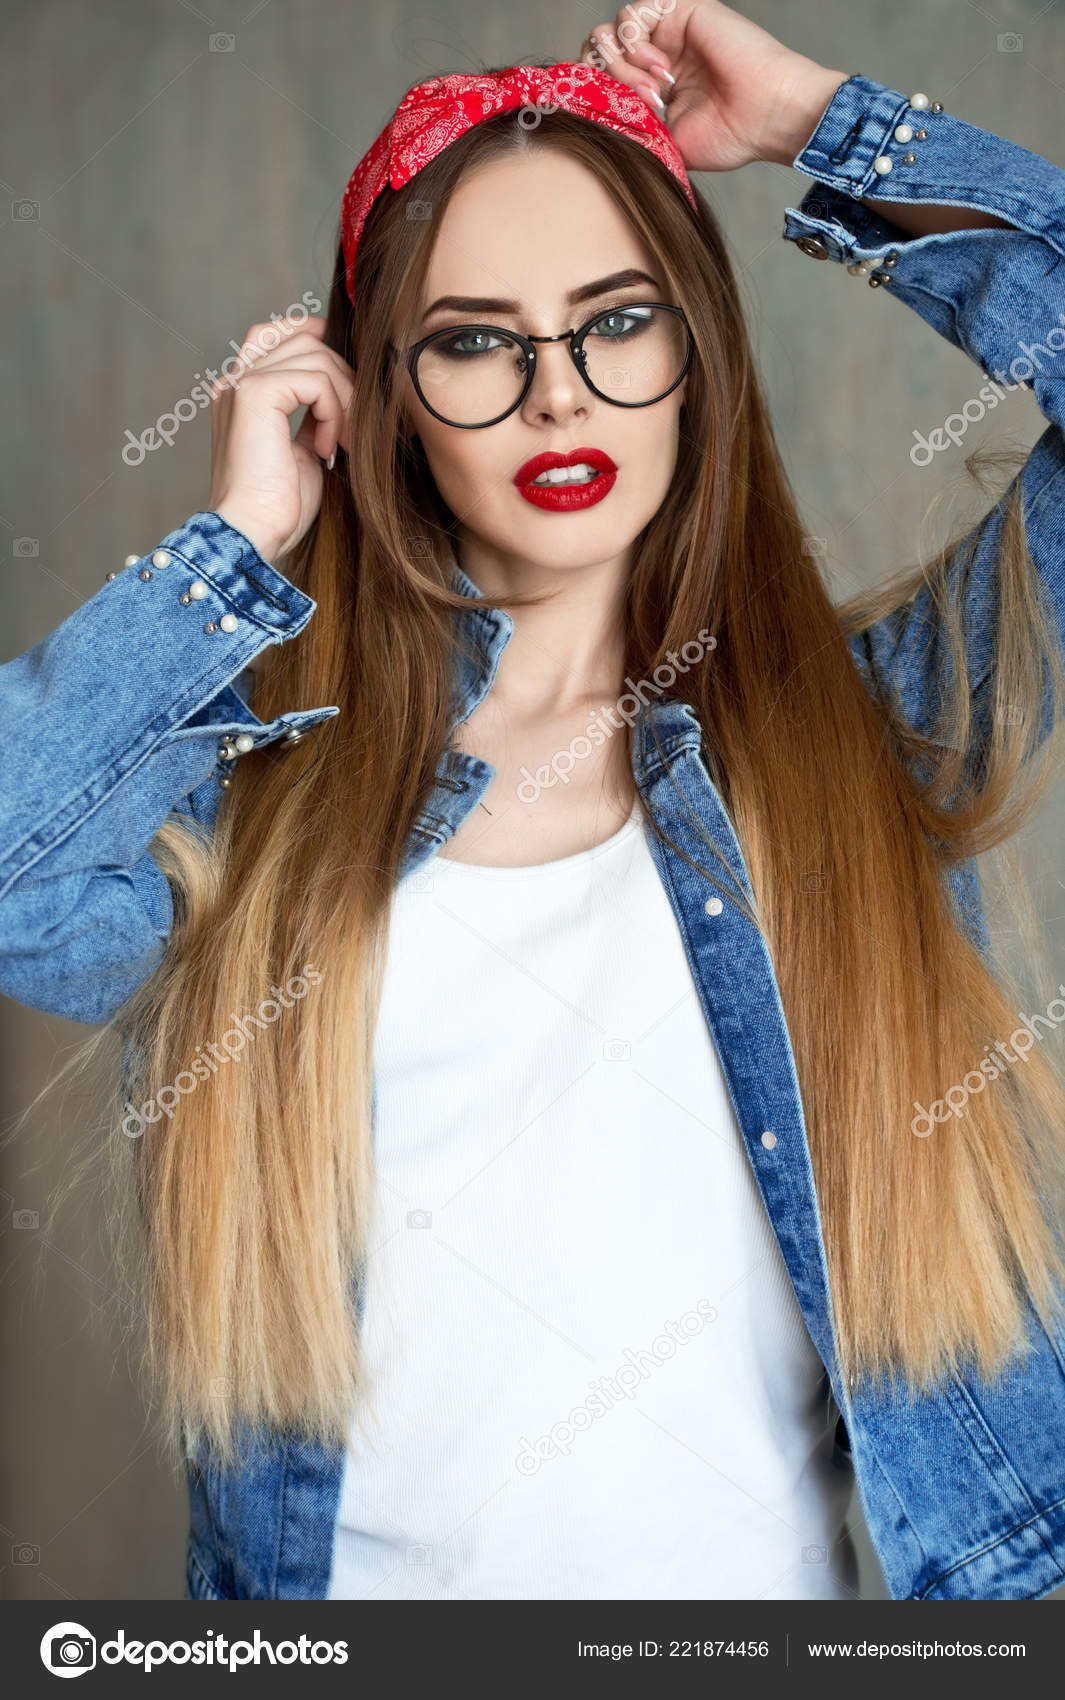 e233fcc050 Beautiful woman in glasses and red bandana and jeans shirt. Beautiful girl  with pretty smile.